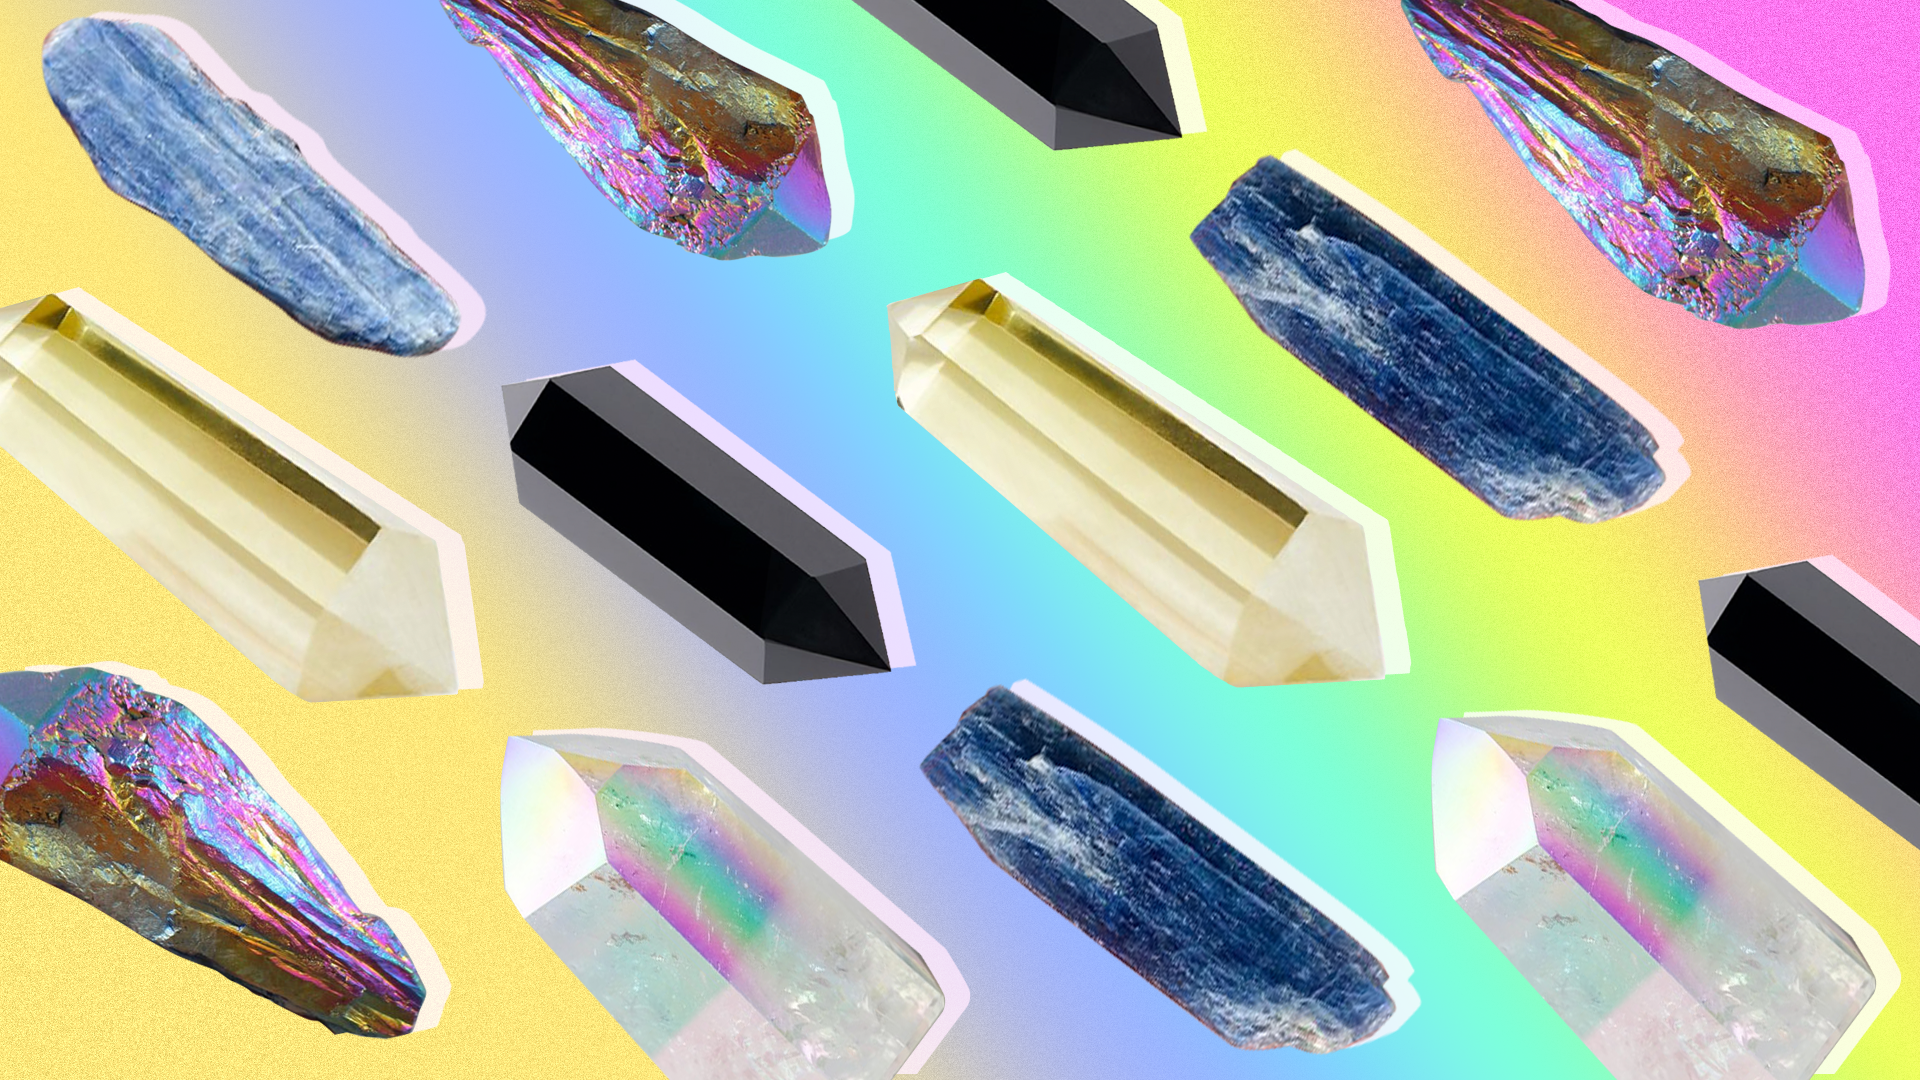 Exactly Where to Buy Those Crystals You Love So Much